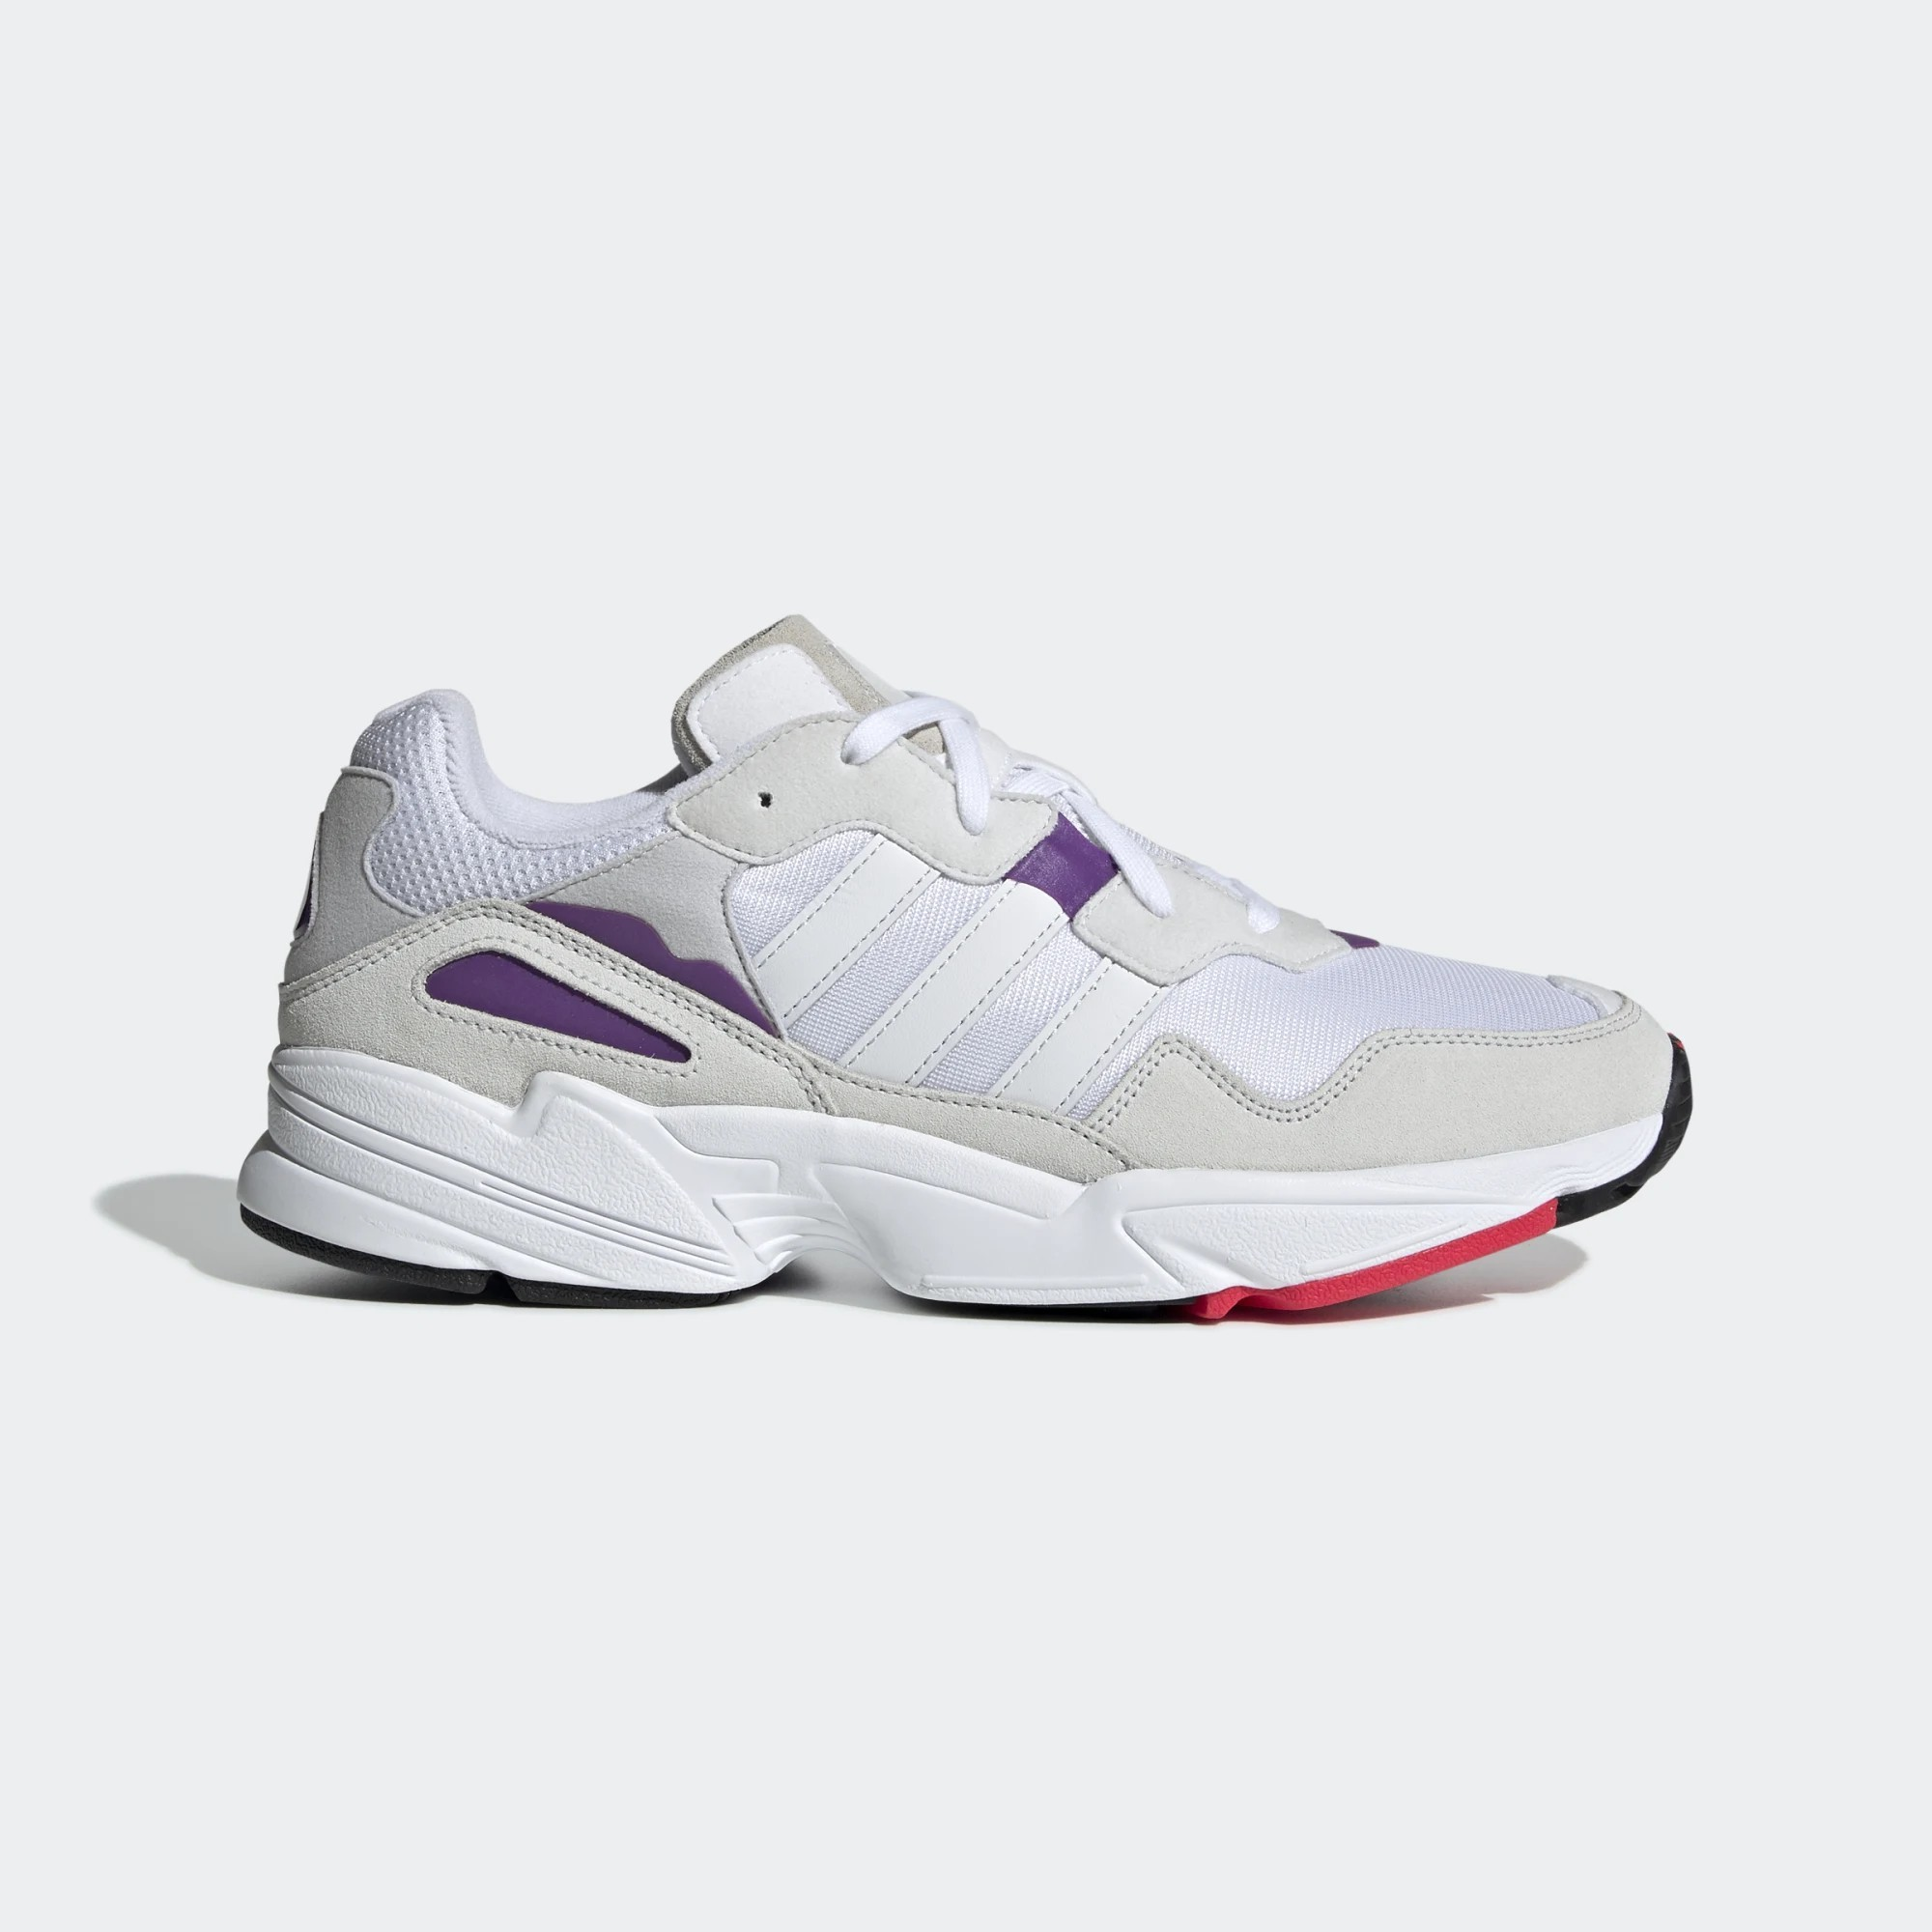 Adidas Yung-96 Blanche/Blanche/Violet DB2601